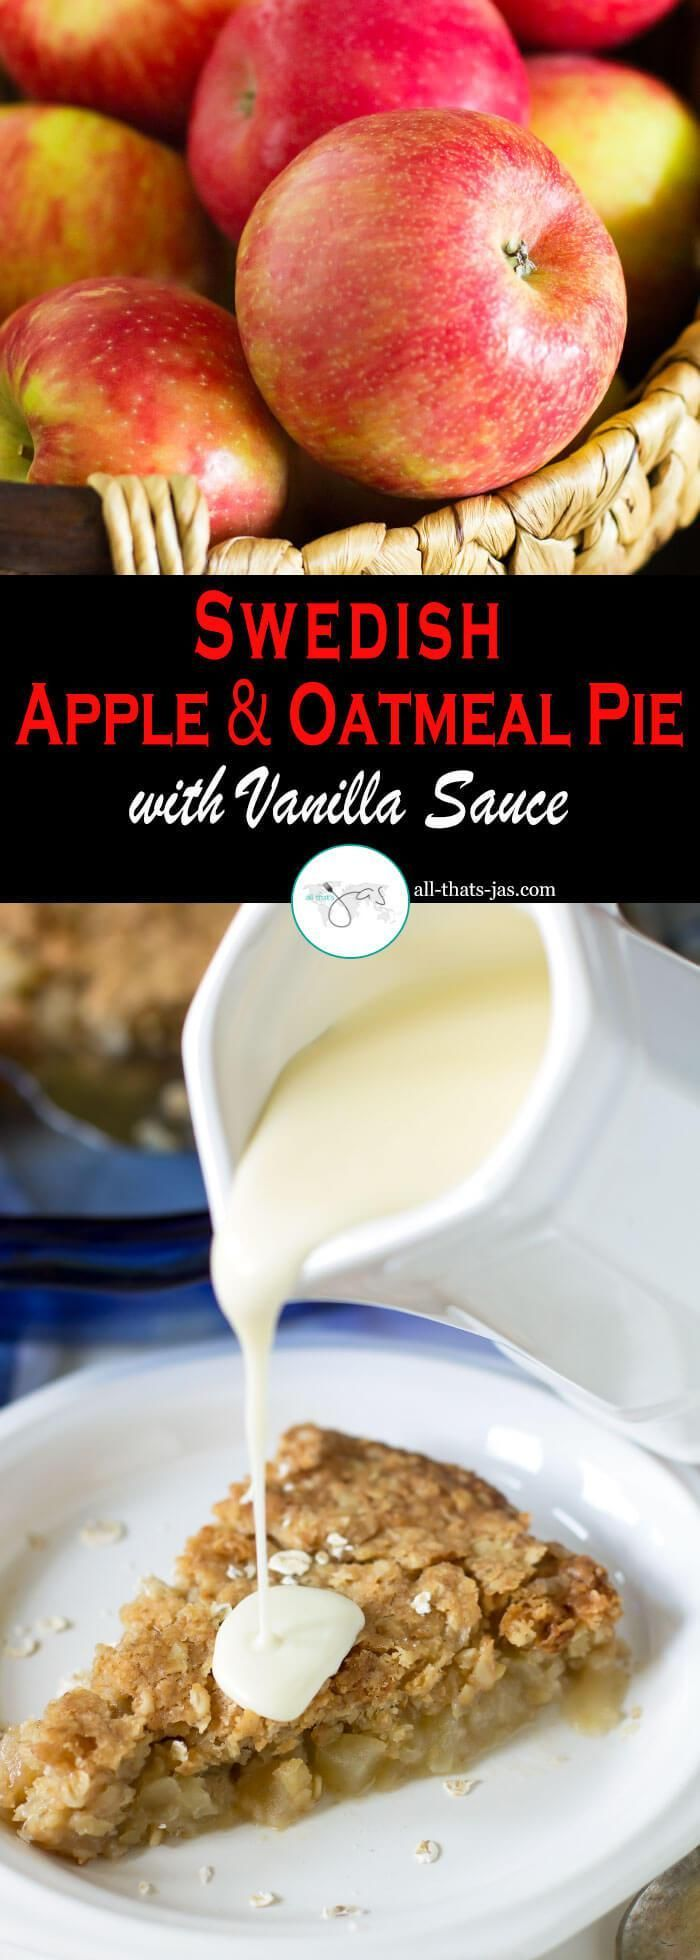 Homemade Swedish apple oatmeal pie with cardamom and creamy vanilla sauce is a perfect dessert for fall or enjoyed any time of the year. This recipe is delicious warm or cold and it is a pure comfort food.